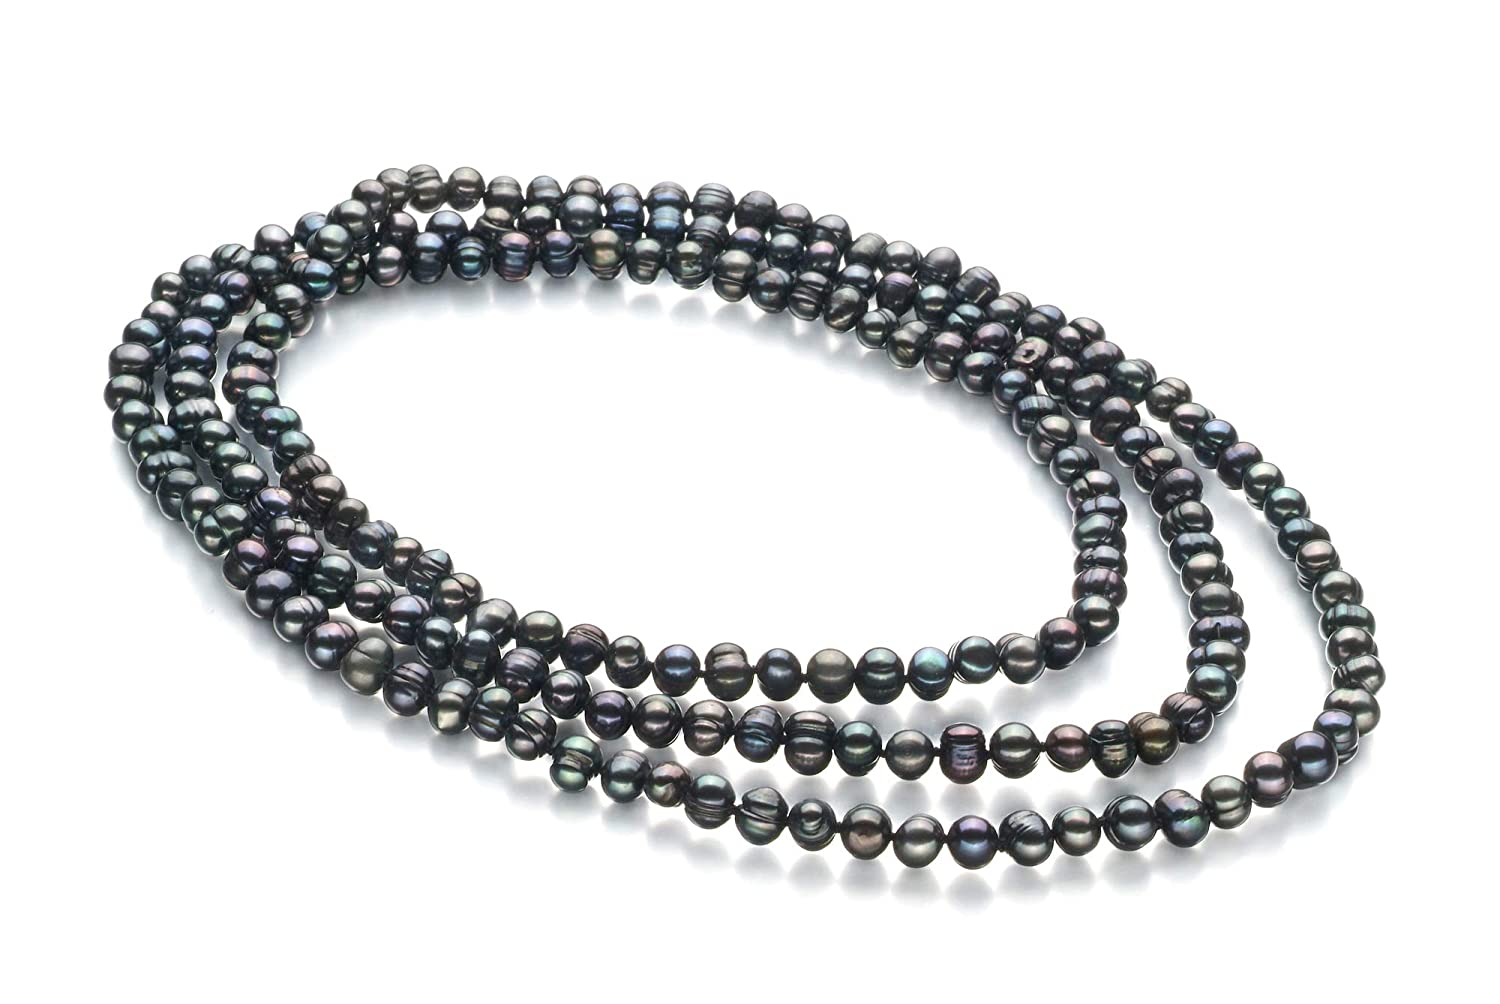 Betty Black 6-7mm A Quality Freshwater Cultured Pearl Necklace for Women-51 in Rope Length